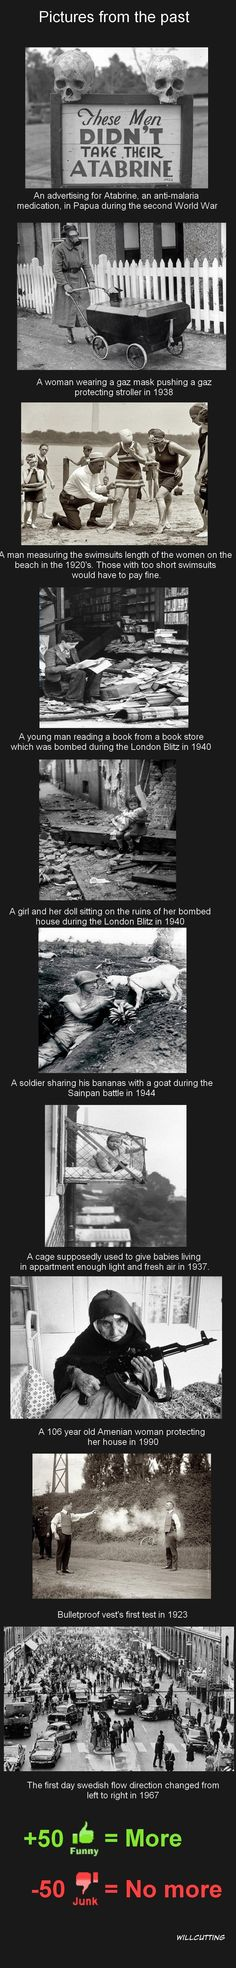 Picture from the past compilation.  // funny pictures - funny photos - funny images - funny pics - funny quotes - #lol #humor #funnypictures